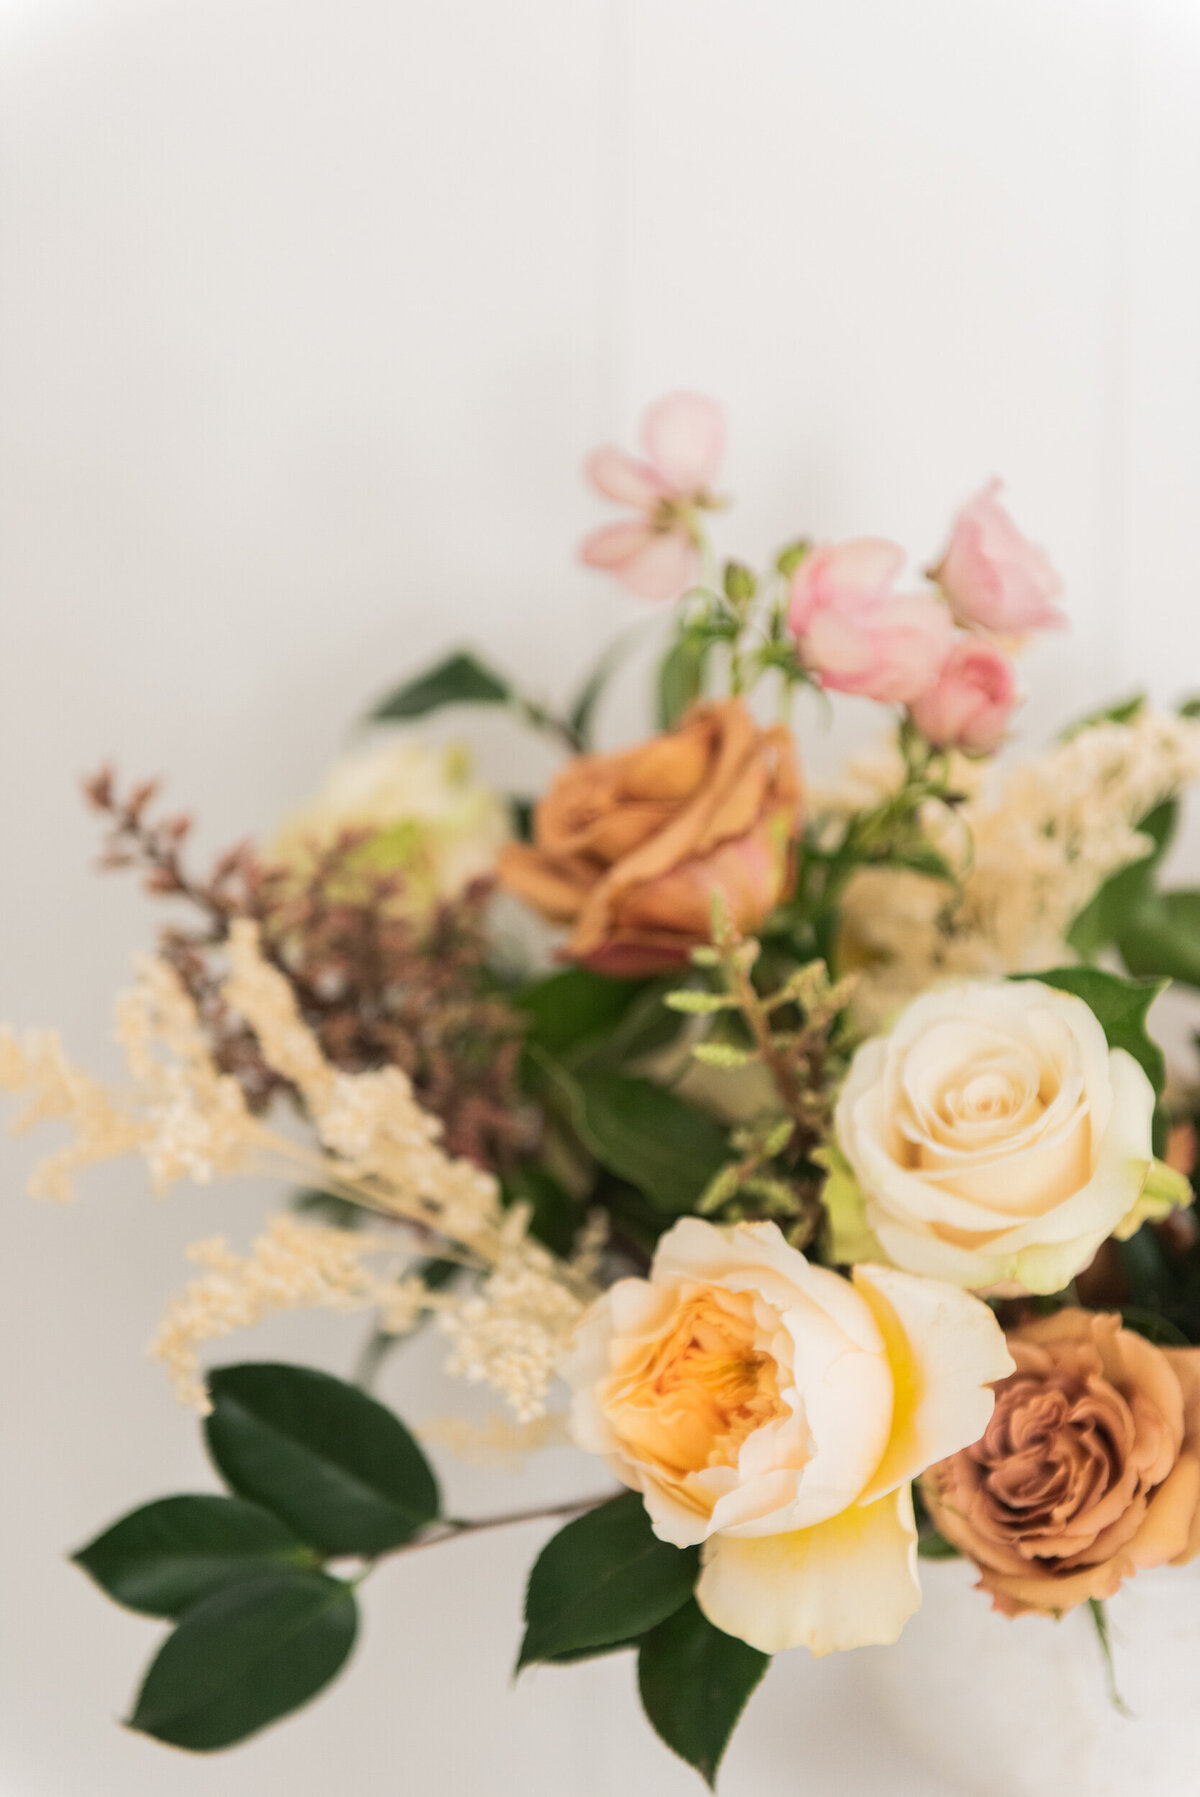 Madalyn Yates Photography floral Design Branding Photography -14